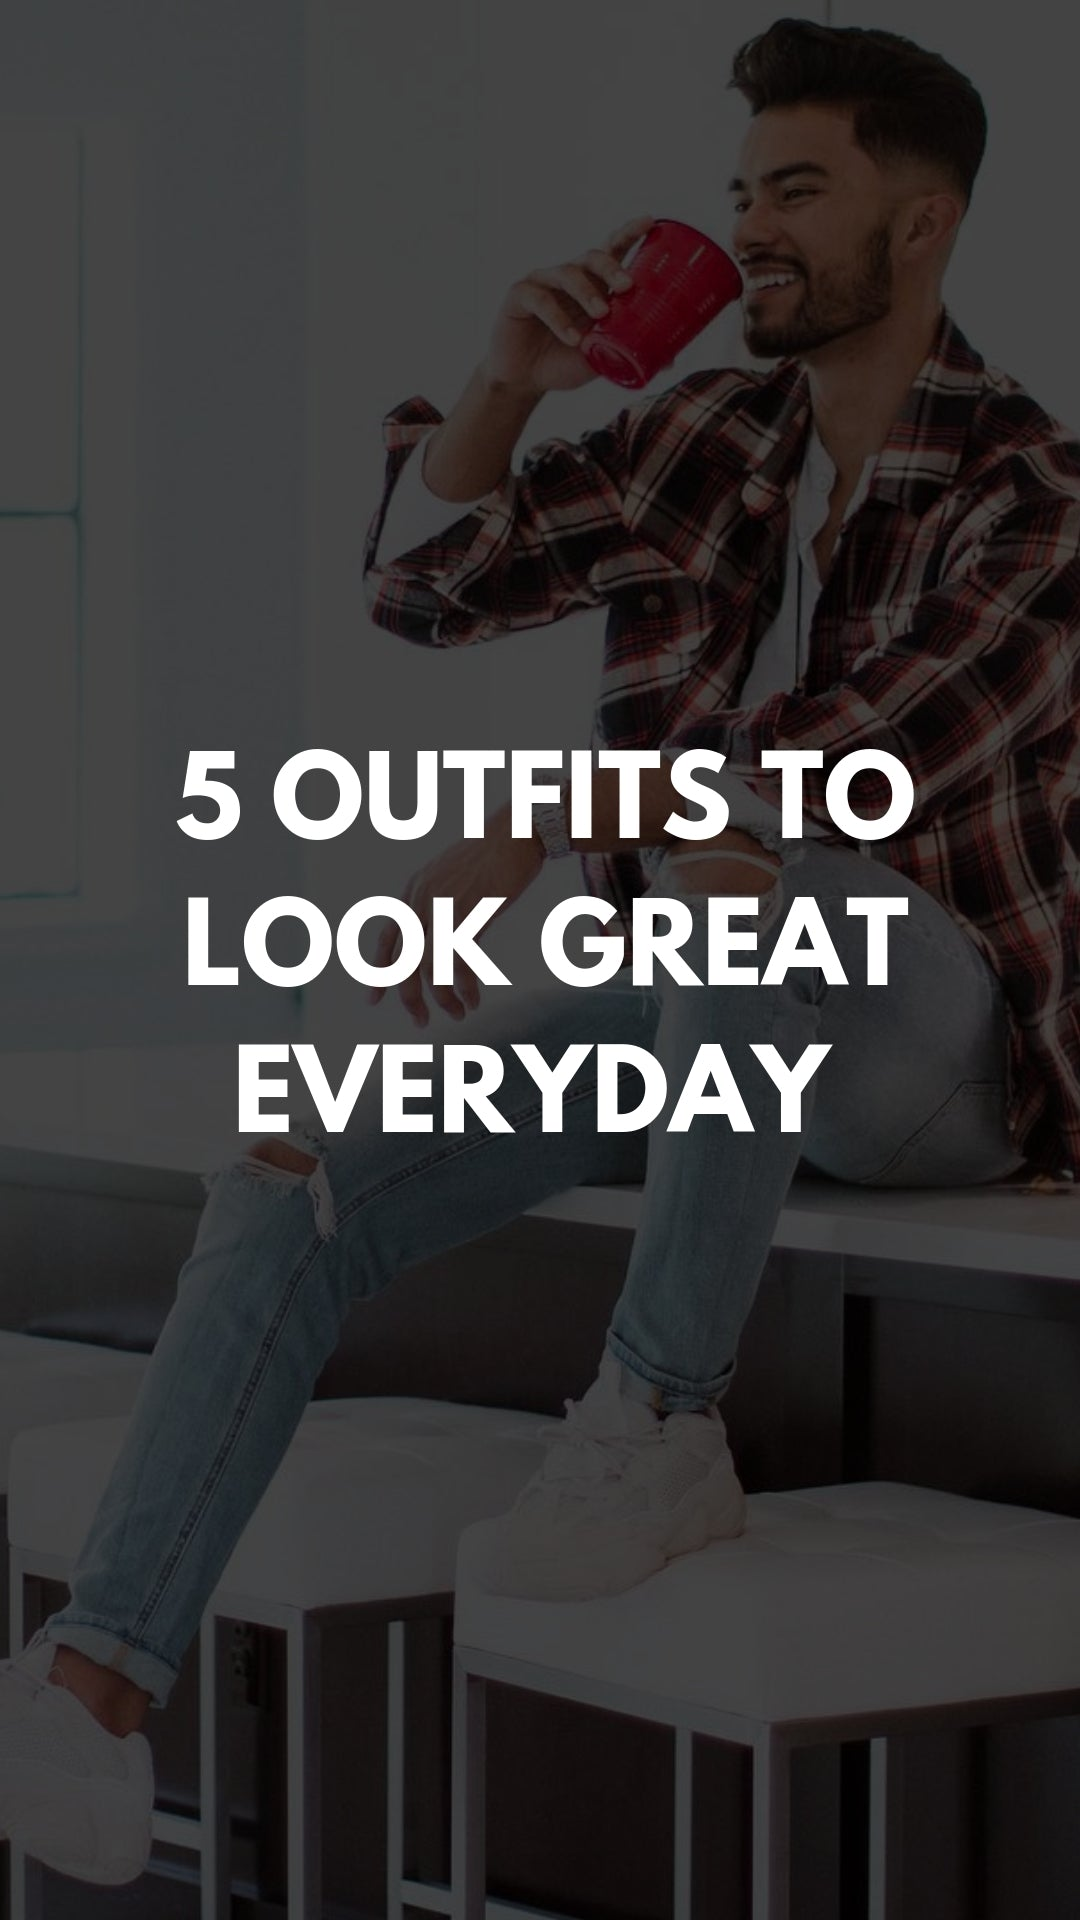 5 Everyday Outfits To Look Great #casualoutfits #streetstyle